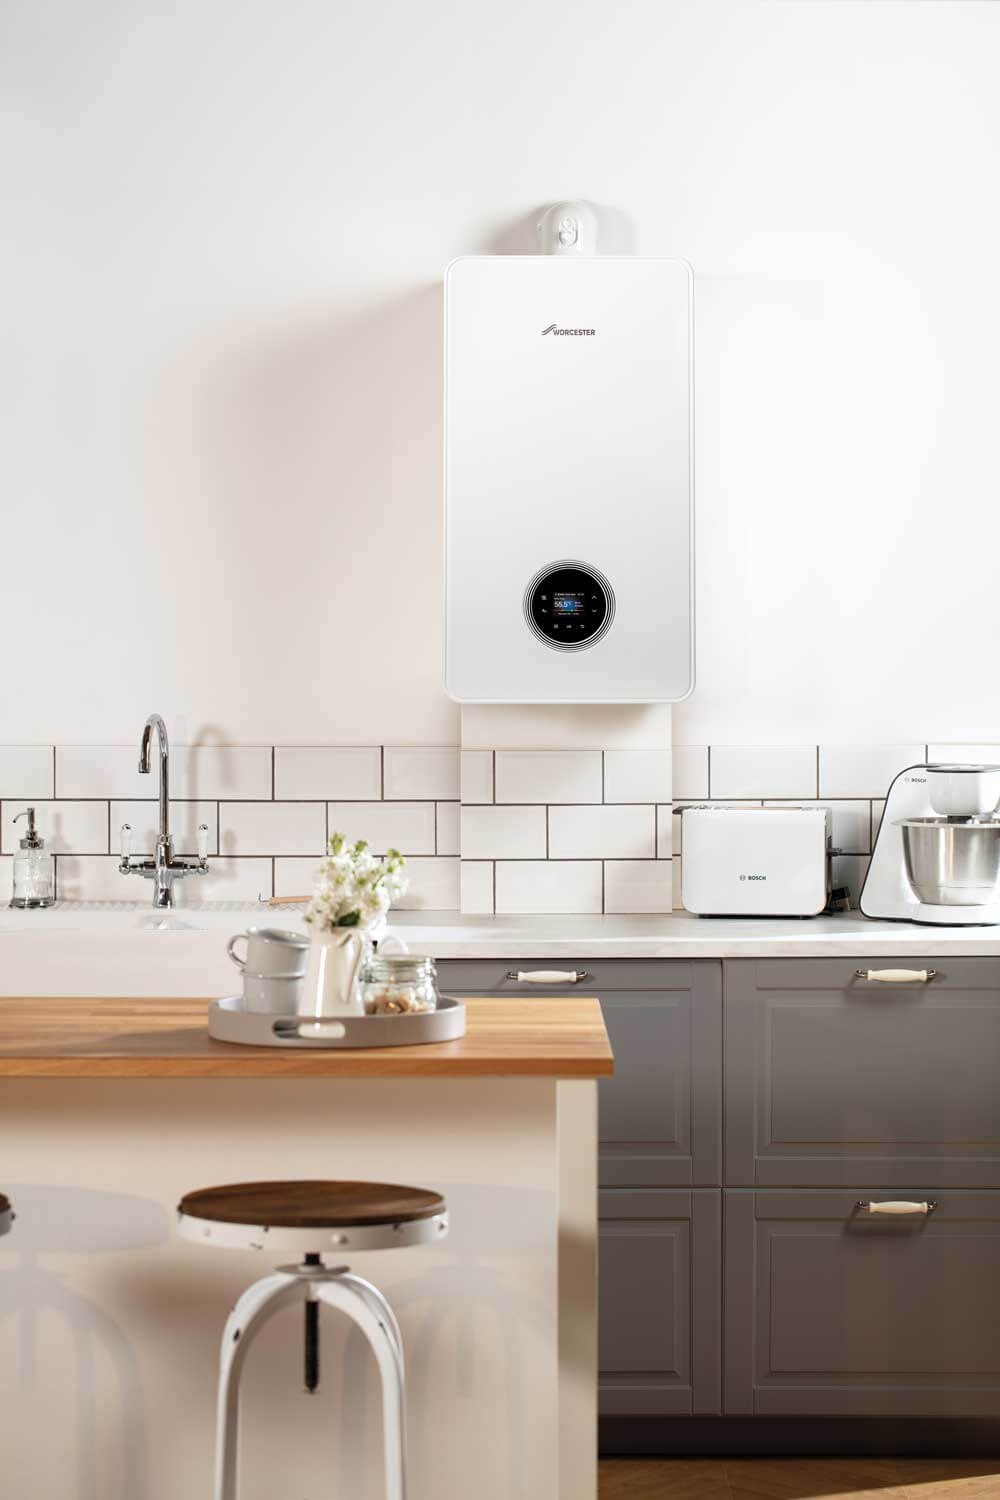 How-much-does-it-cost-to-install-a-new-gas-boiler